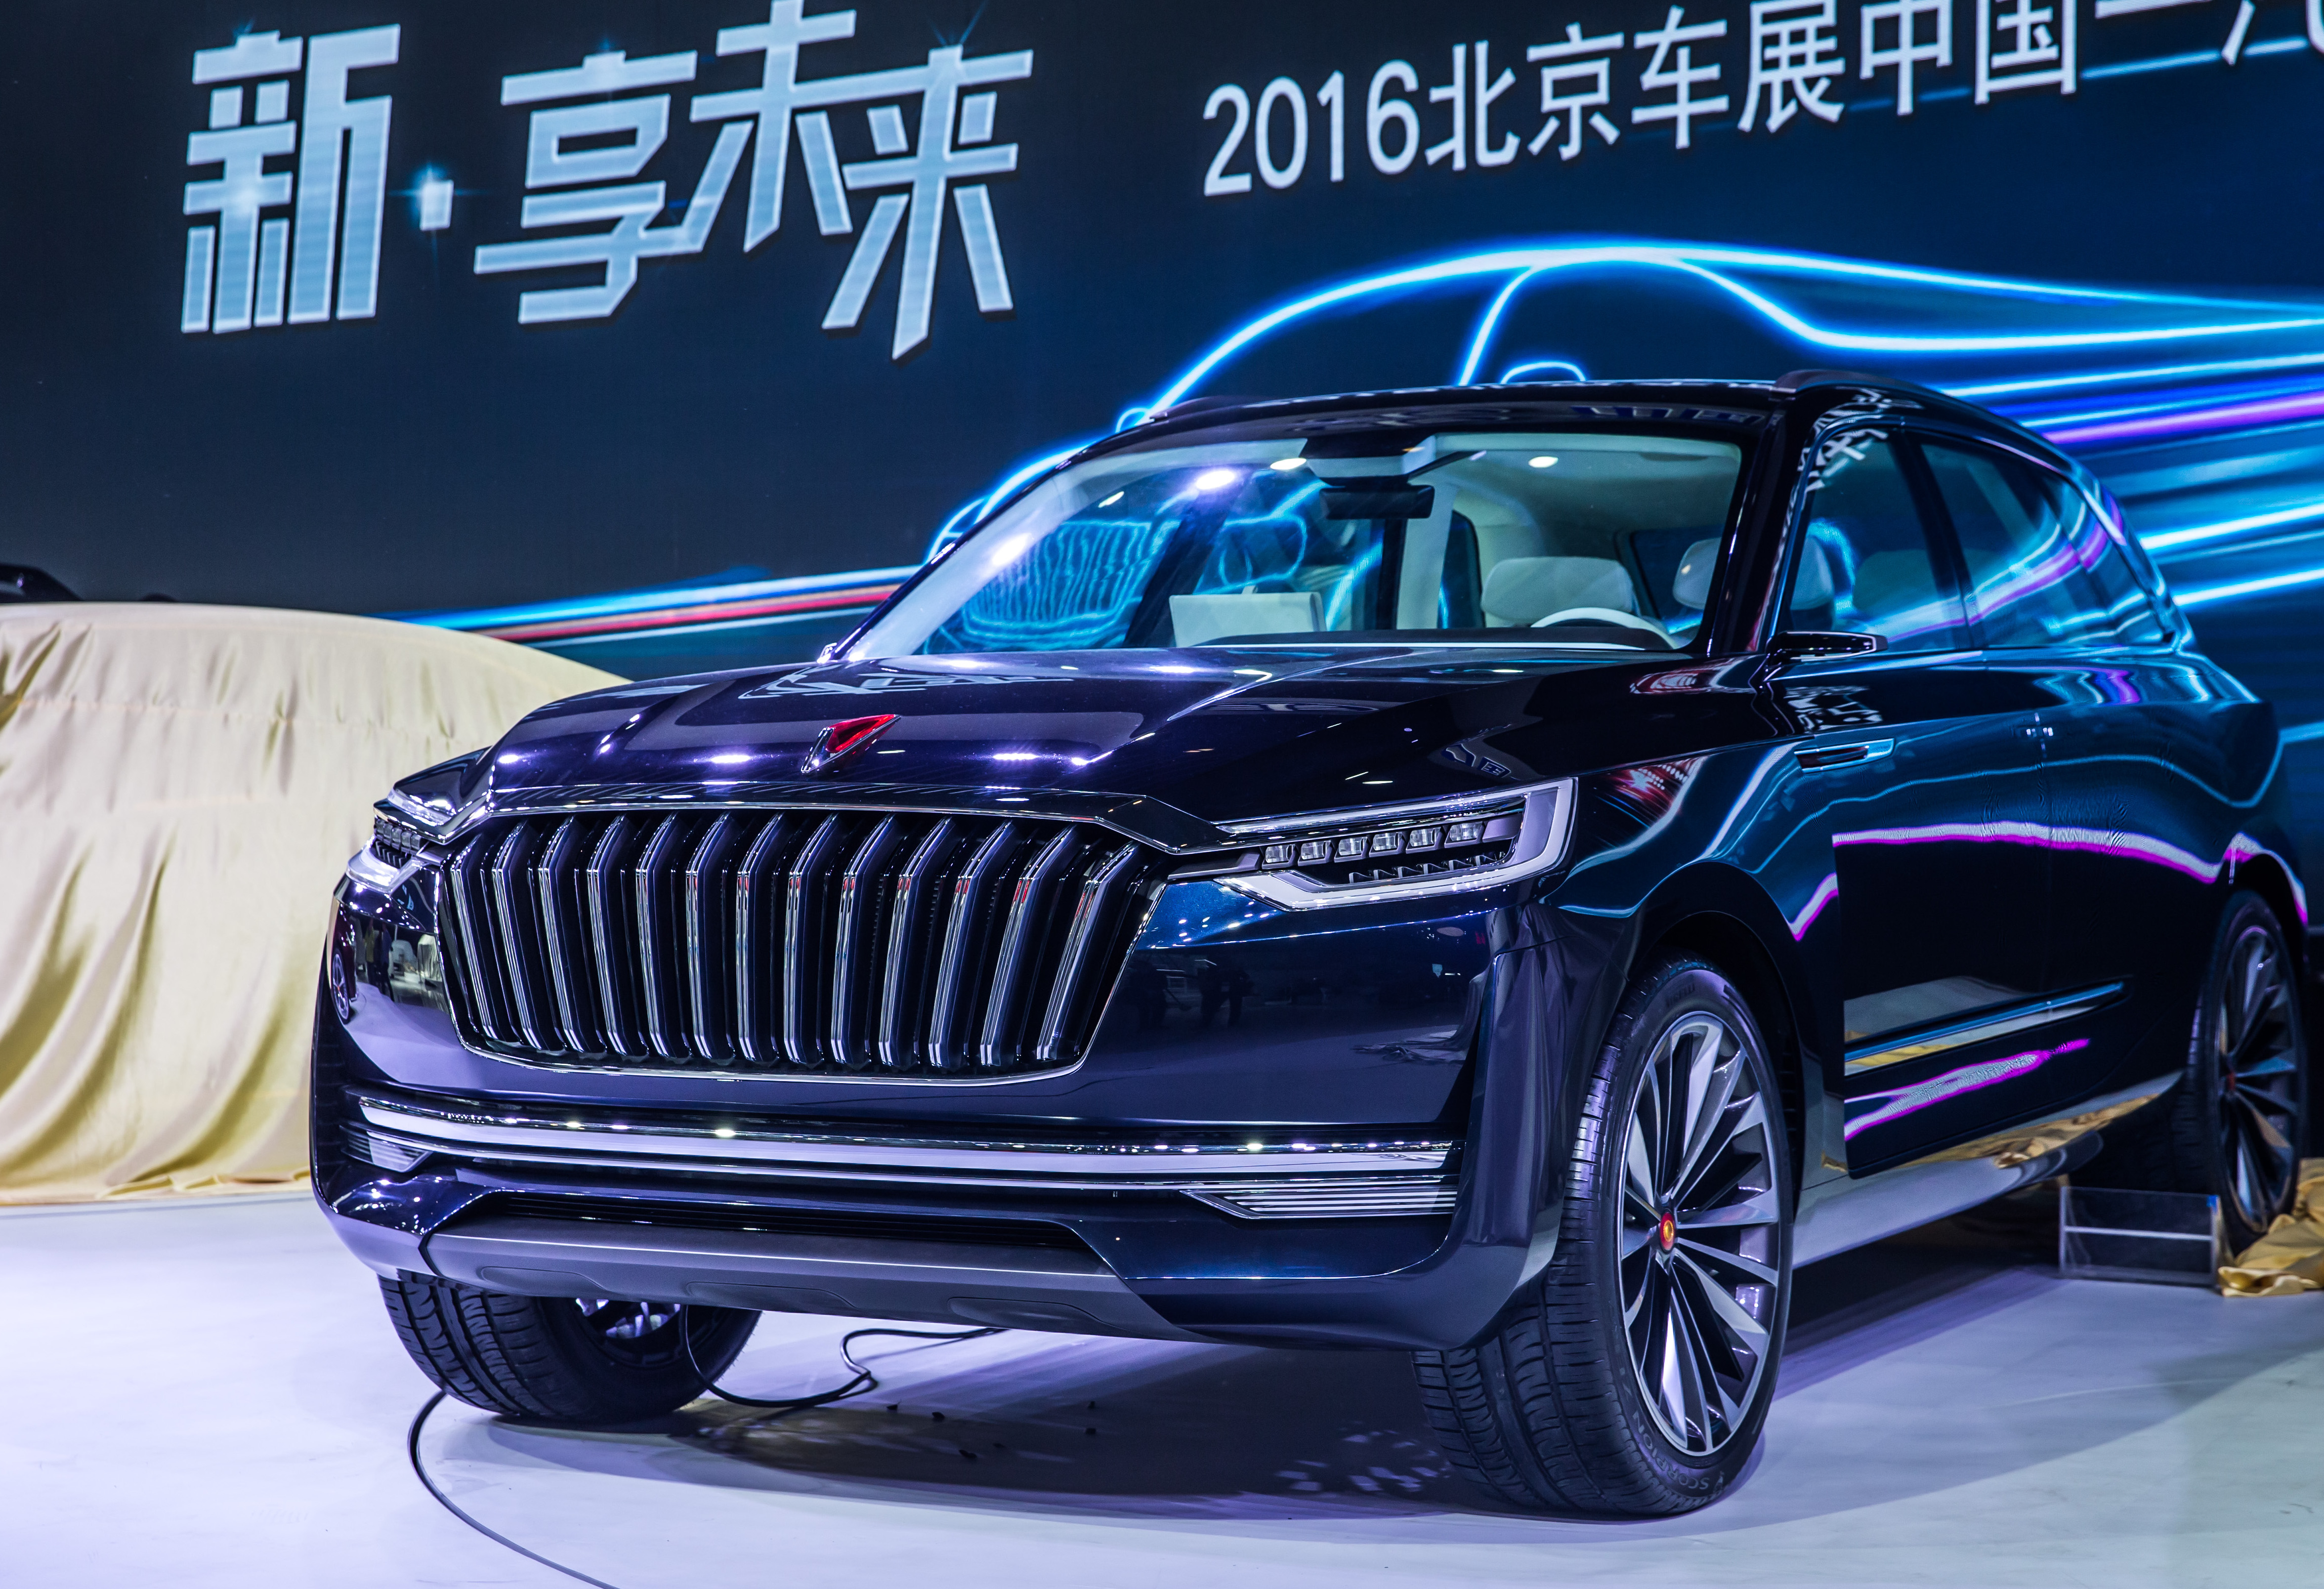 FAW HongQi HS5 suv photo